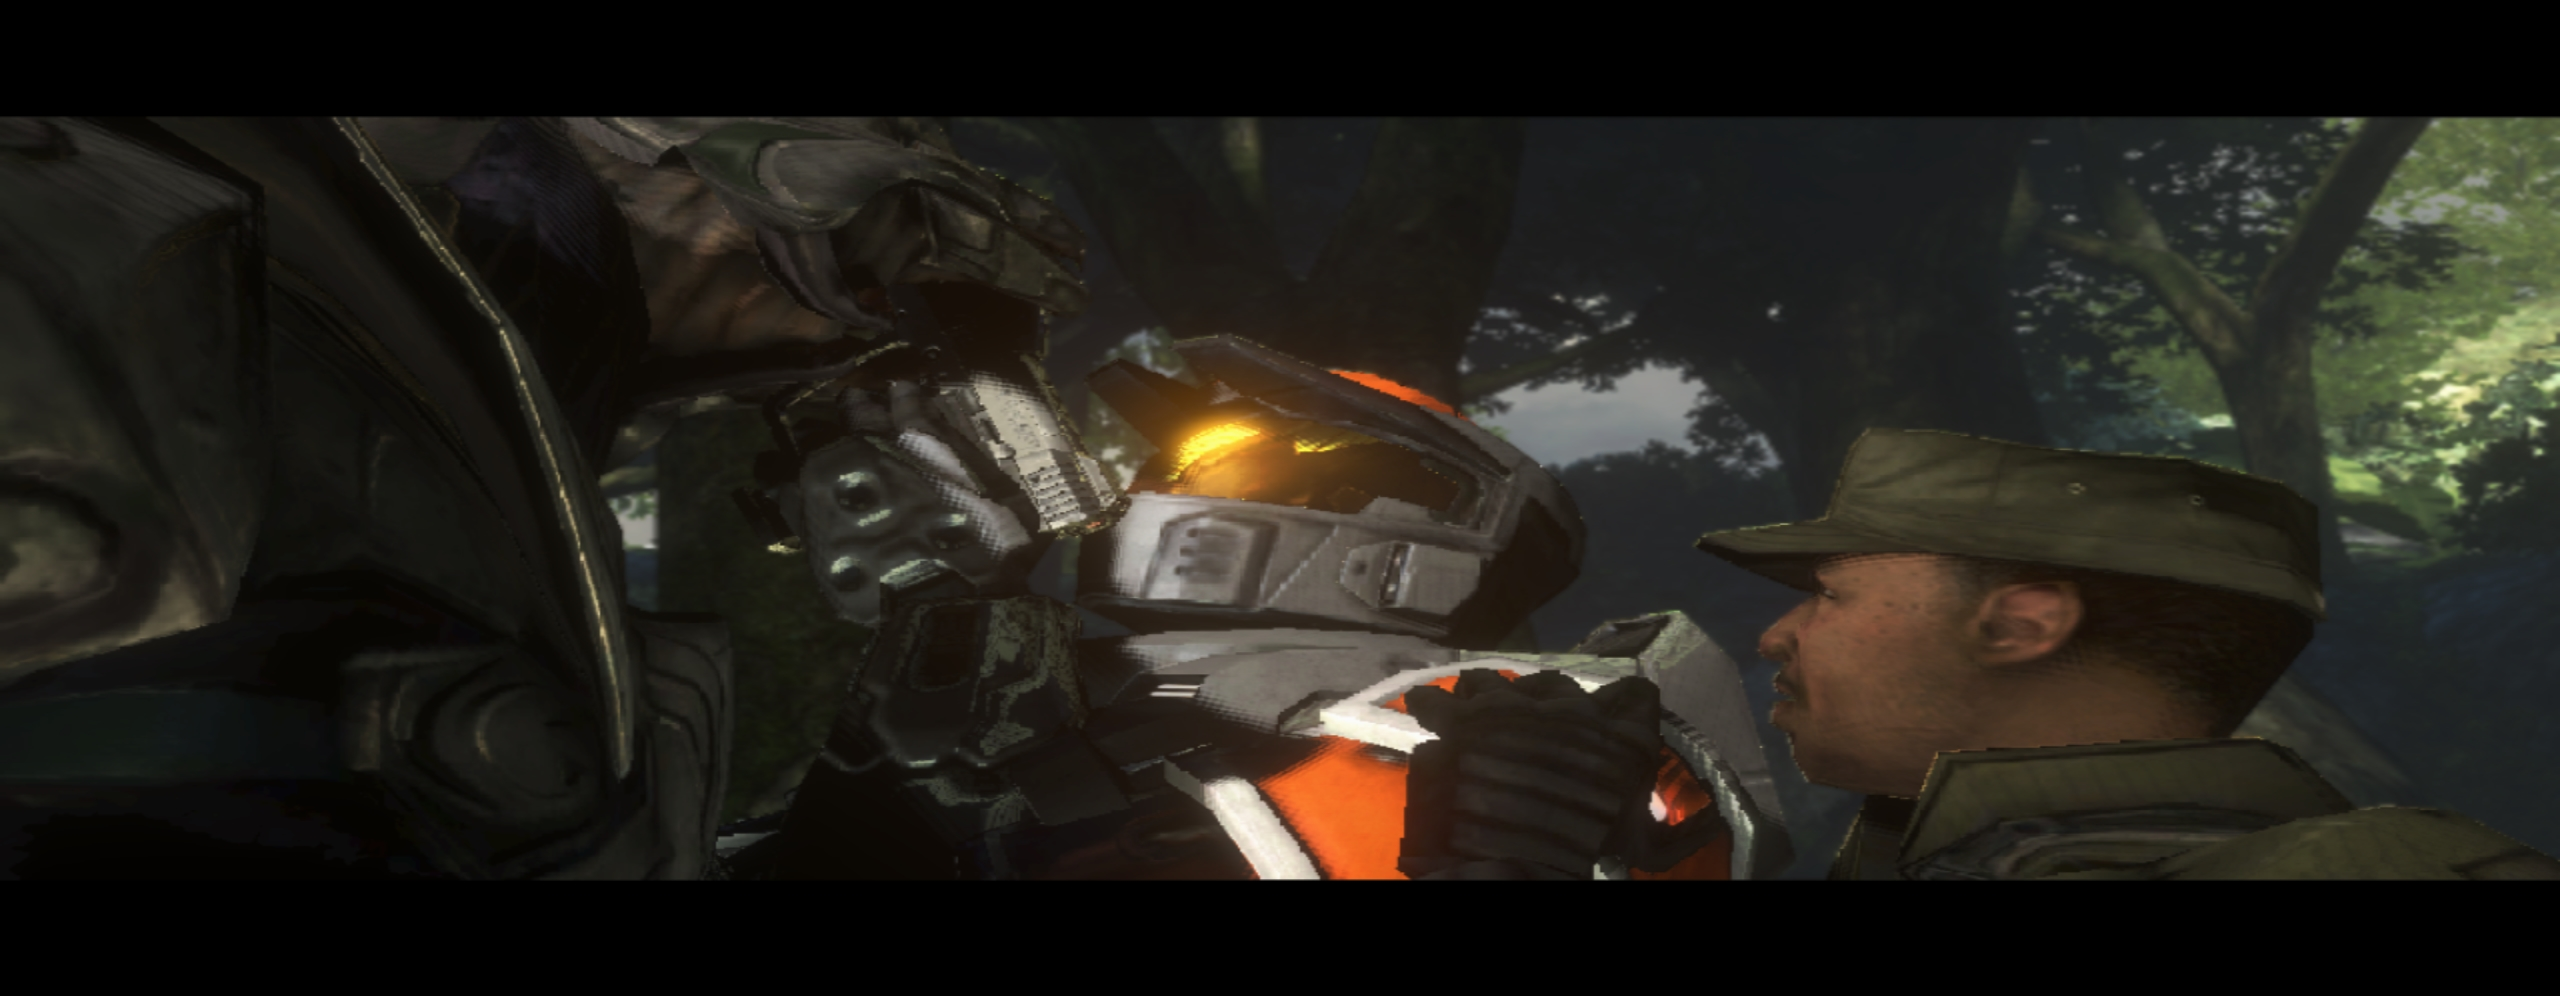 Support] Character replacement in campaign cinematics - Halo